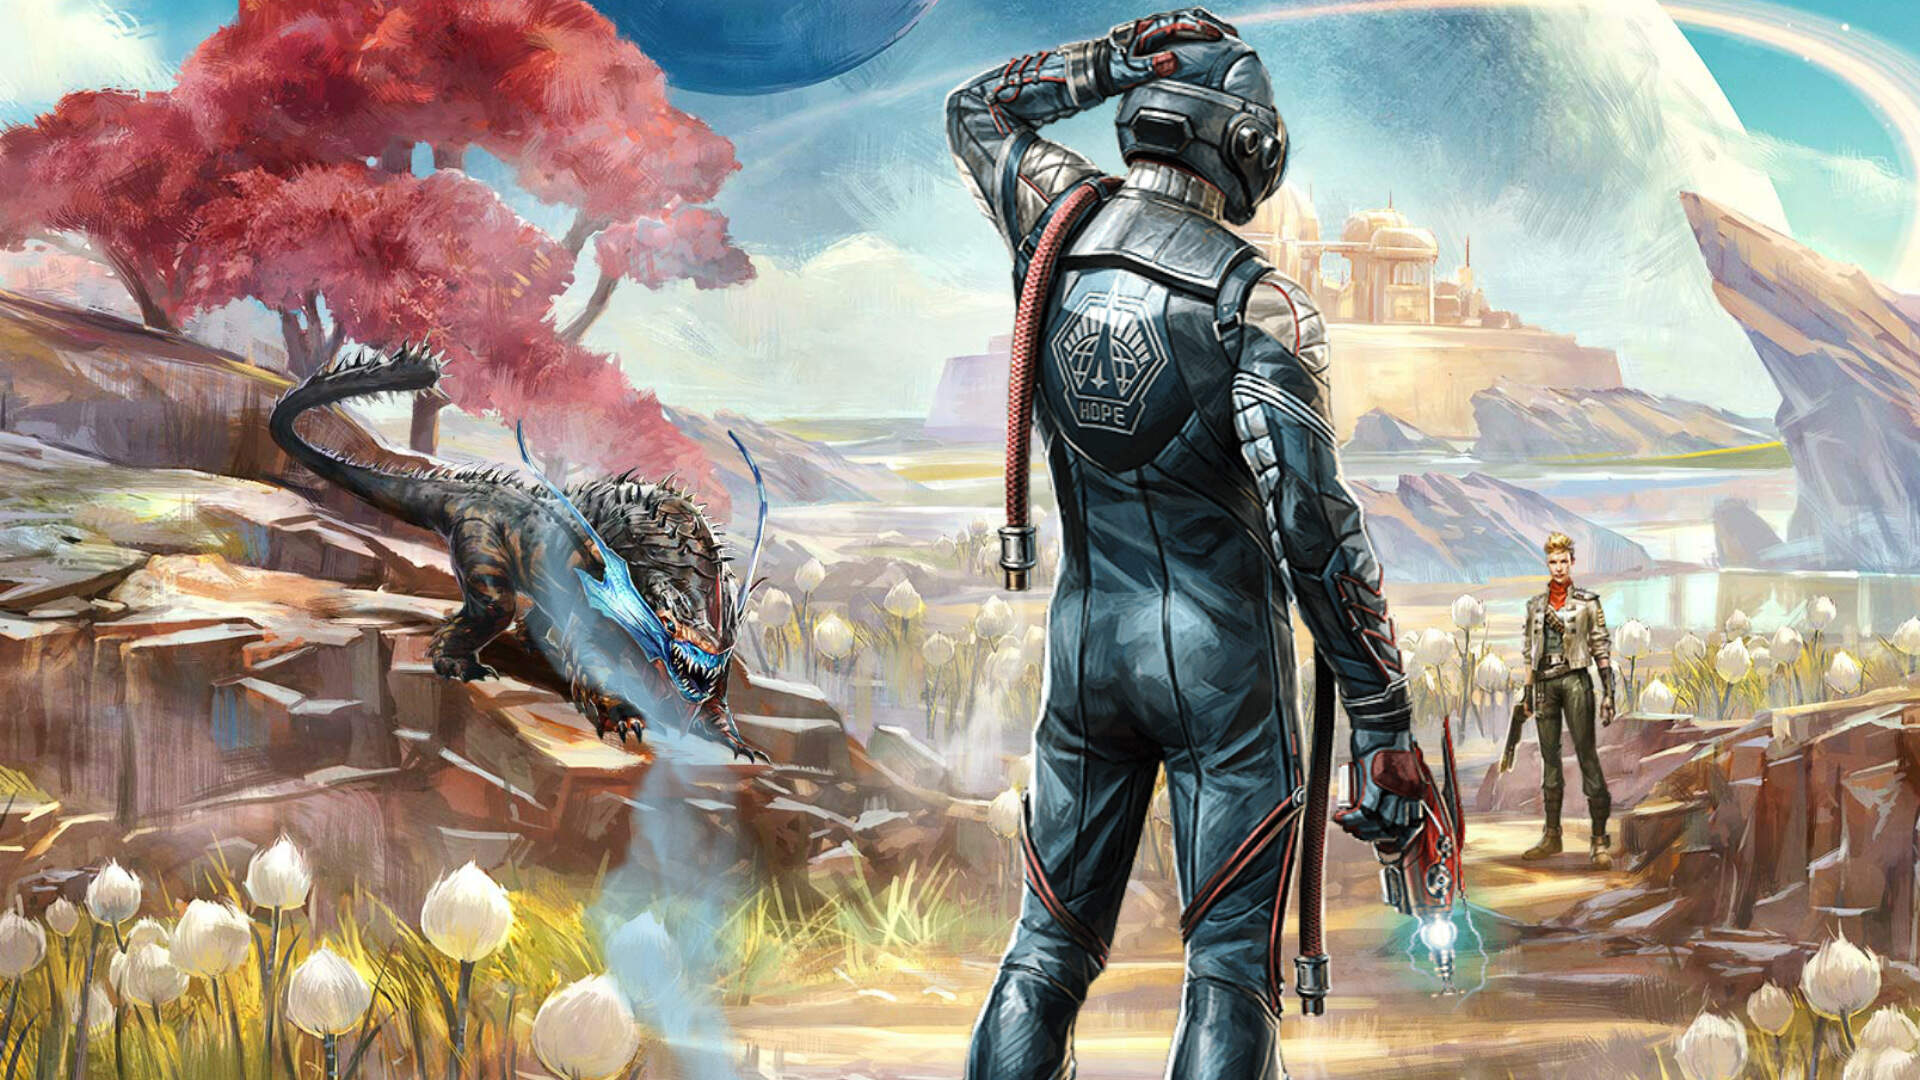 The Outer Worlds Review: To Boldly Go Where Mega-Corps Have Gone Before